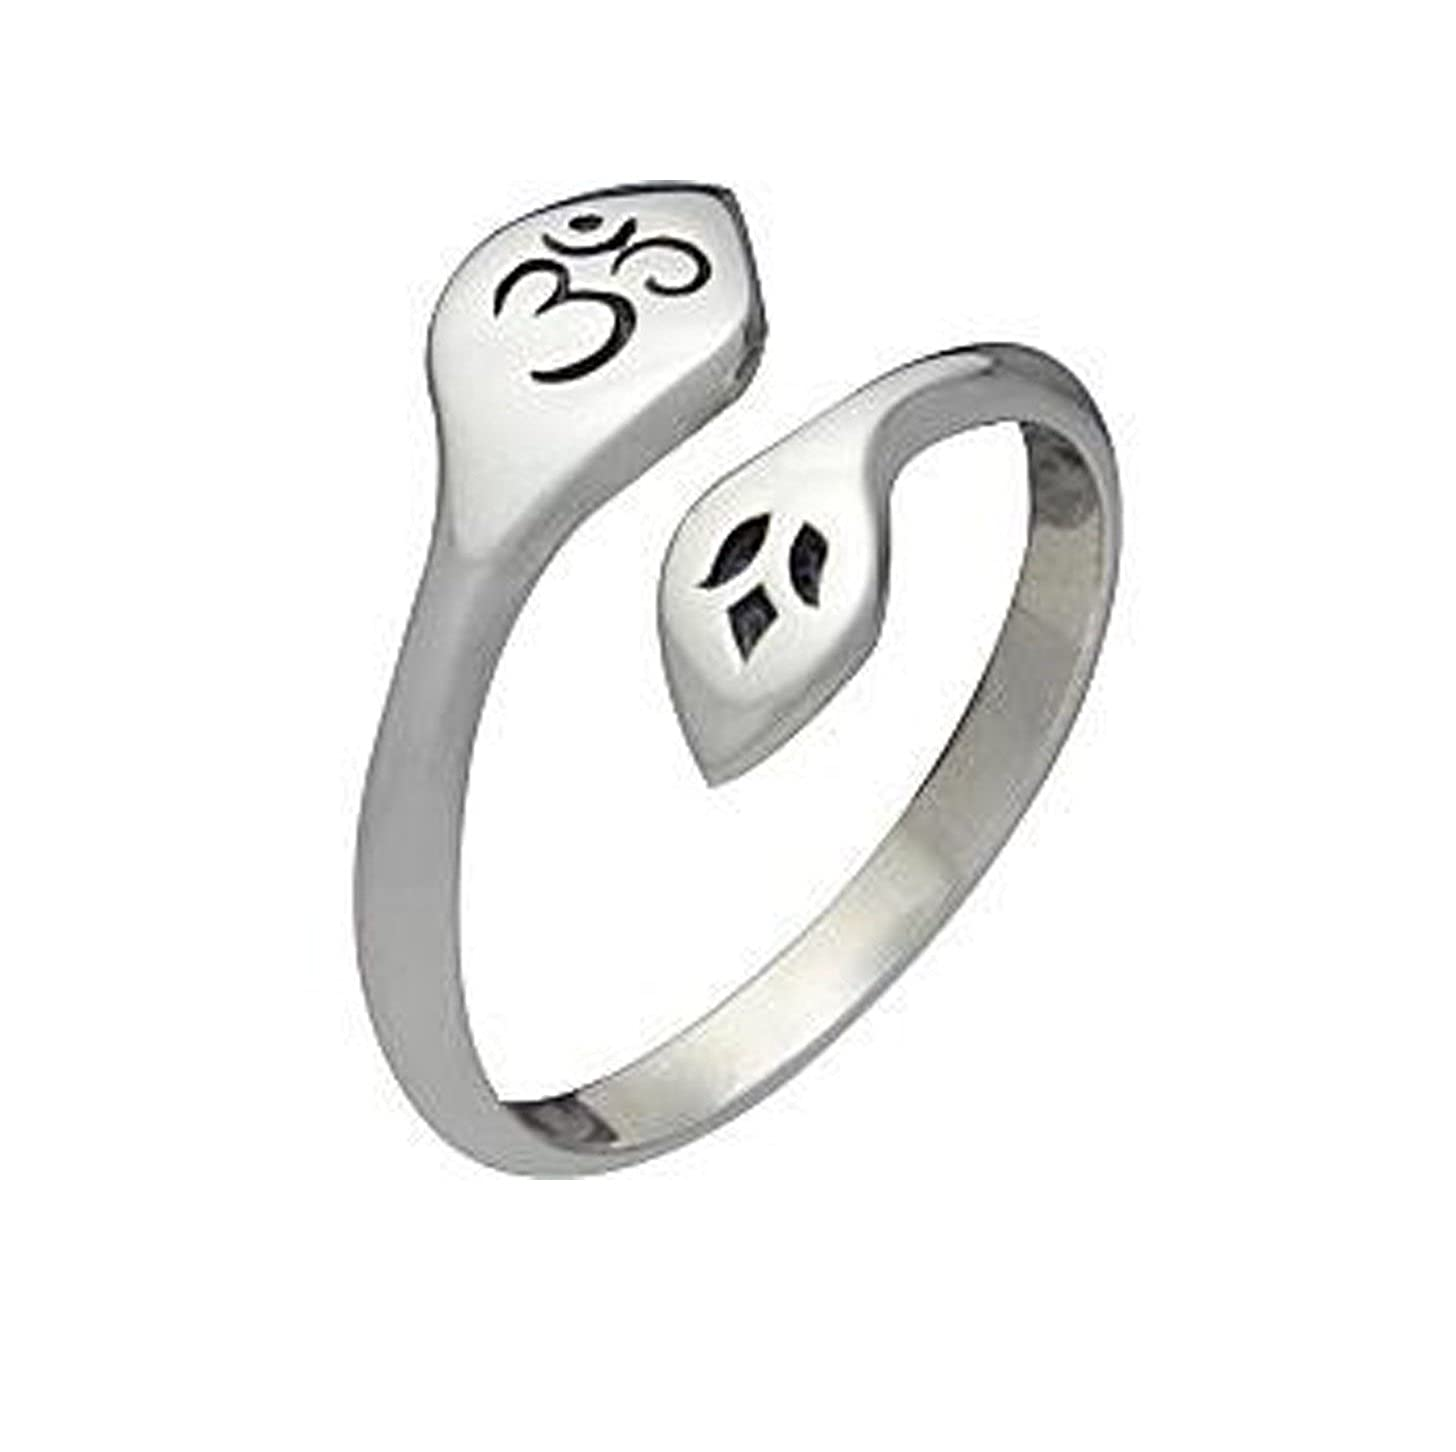 tusakha Awesome 14K White Gold Plated Sterling Silver Bypass Om & Lotus Ring-Adjustable Toe Ring For Womens TUSR_001